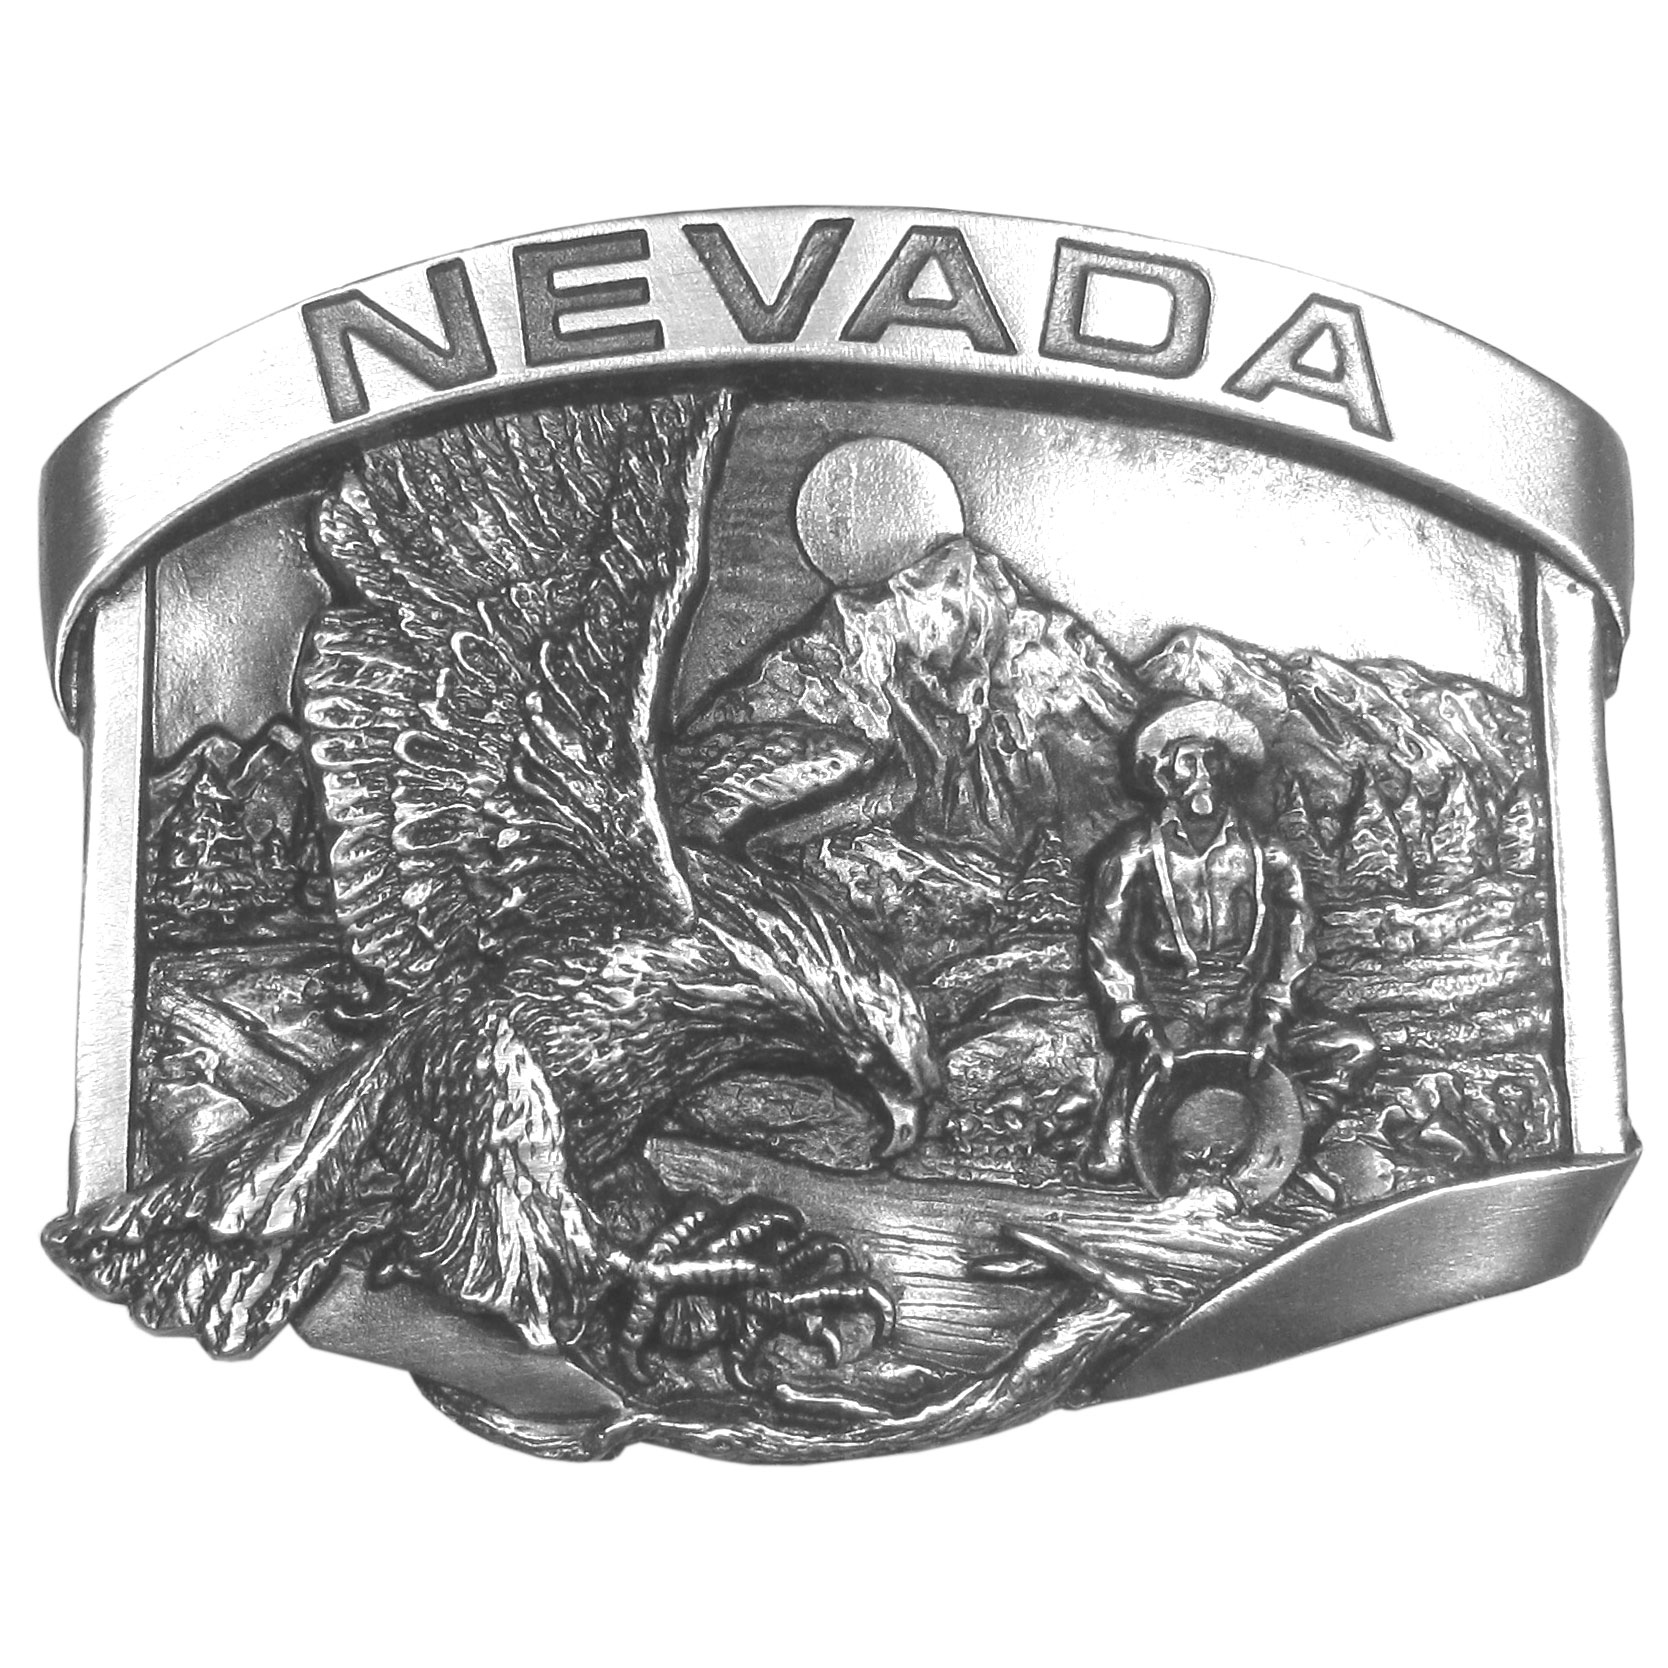 "Nevada Belt Buckle Antiqued Belt Buckle - ""If you're from Nevada, this buckle is for you! It proudly has the word """"Nevada"""" on a banner across the top. Below that is an eagle landing with it's claws outstretched, a miner panning for gold in a river, the Sierra Nevada Mountains along with the sun and trees. This exquistely carved buckle is made of fully cast metal with a standard bale that fits up to 2"""" belts. Siskiyou's unique buckle designs often become collectors items and are unequaled with the best craftsmanship."""